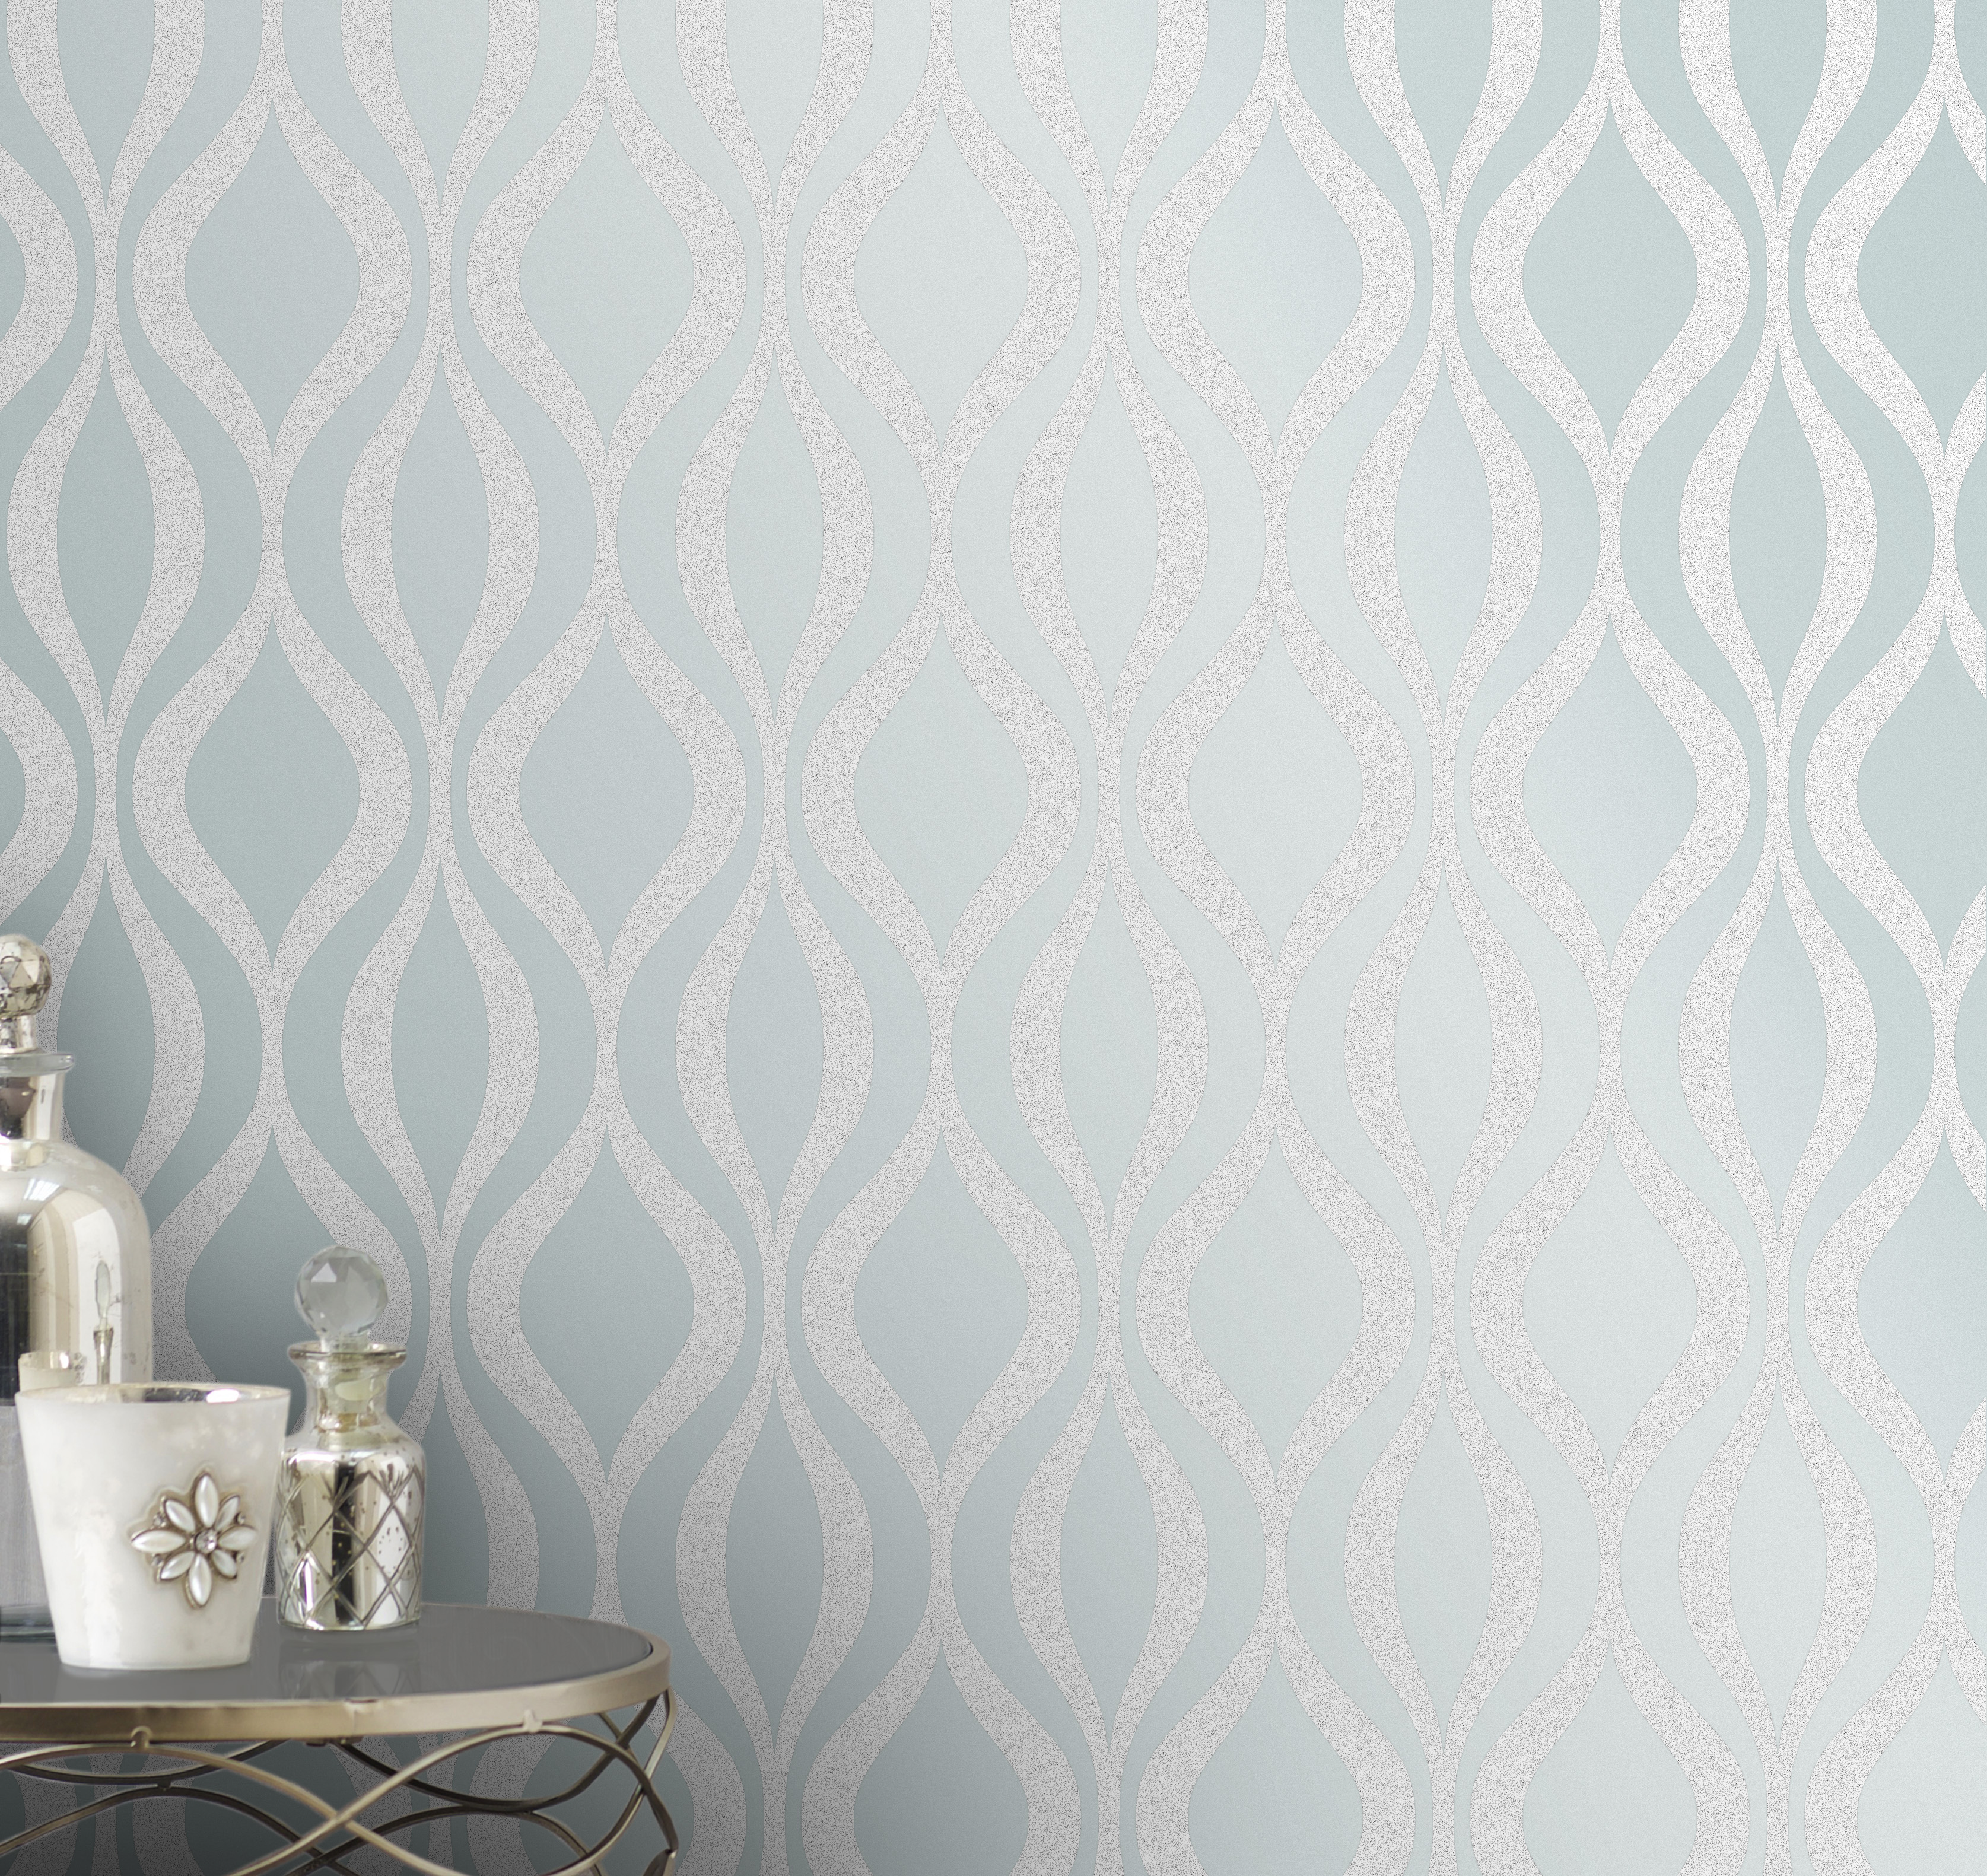 Fine Decor Monaco Geo Wallpaper - FD42257 -Teal